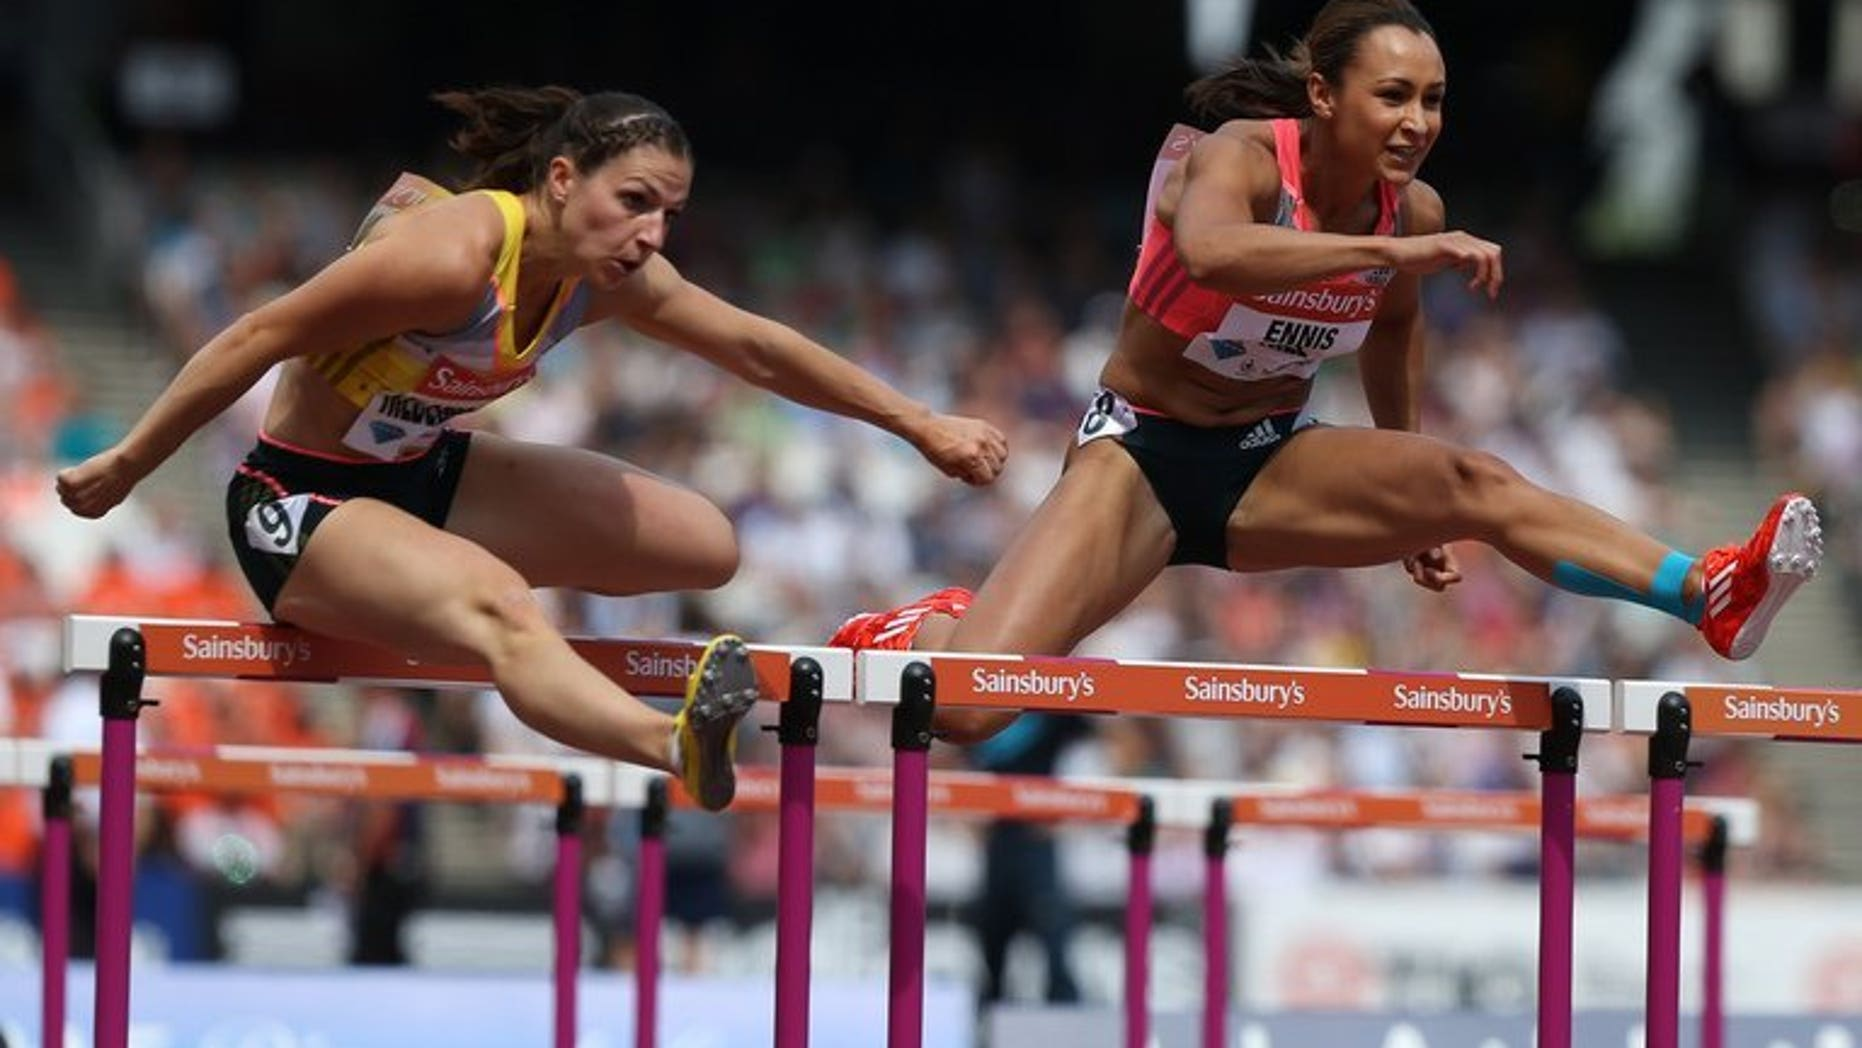 Jessica Ennis-Hill (right) outpaces Nadine Hilderbrand at the Anniversary Games in London on July 27. Ennis-Hill's coach expects the Olympic heptathlon champion to be sidelined for up to four months with the Achilles problem that forced her withdrawal from this month's world championships.